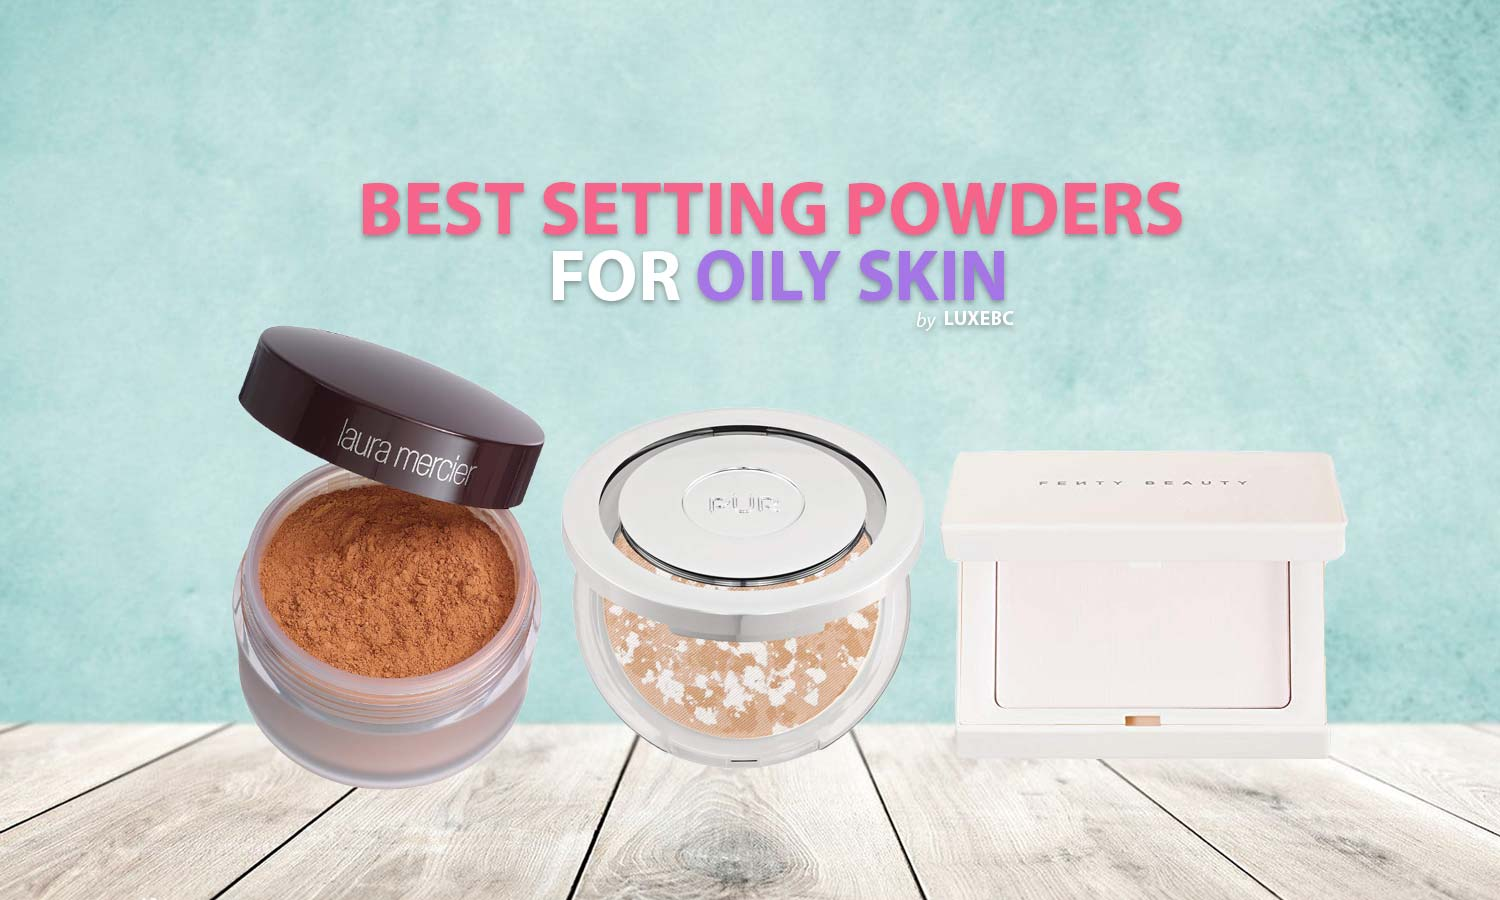 Top rated setting powders for oily skin